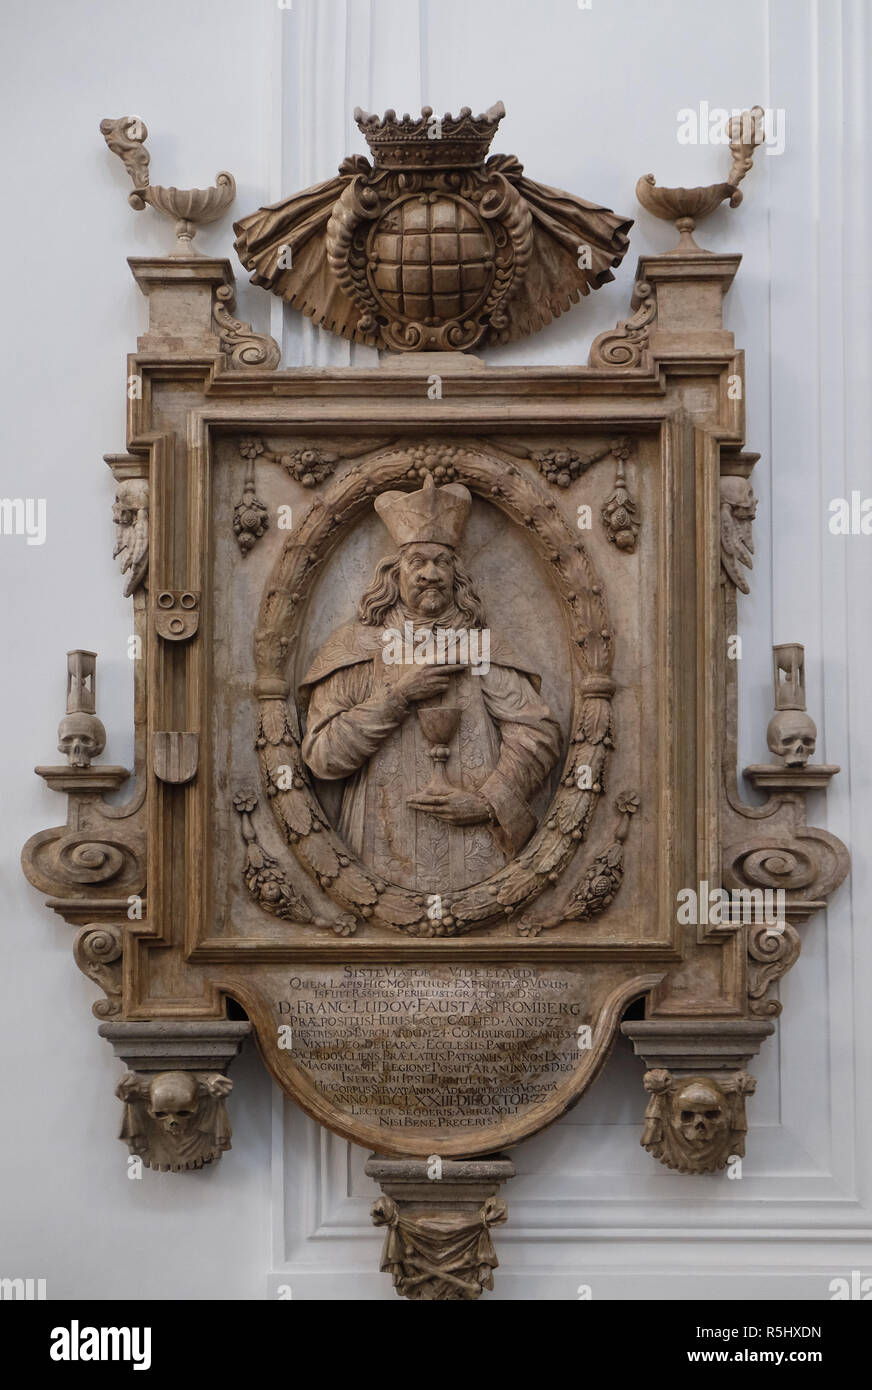 Memorial to the Cathedral provost Franz Ludwig Faust von Stromberg in Wurzburg Cathedral, Bavaria, Germany - Stock Image